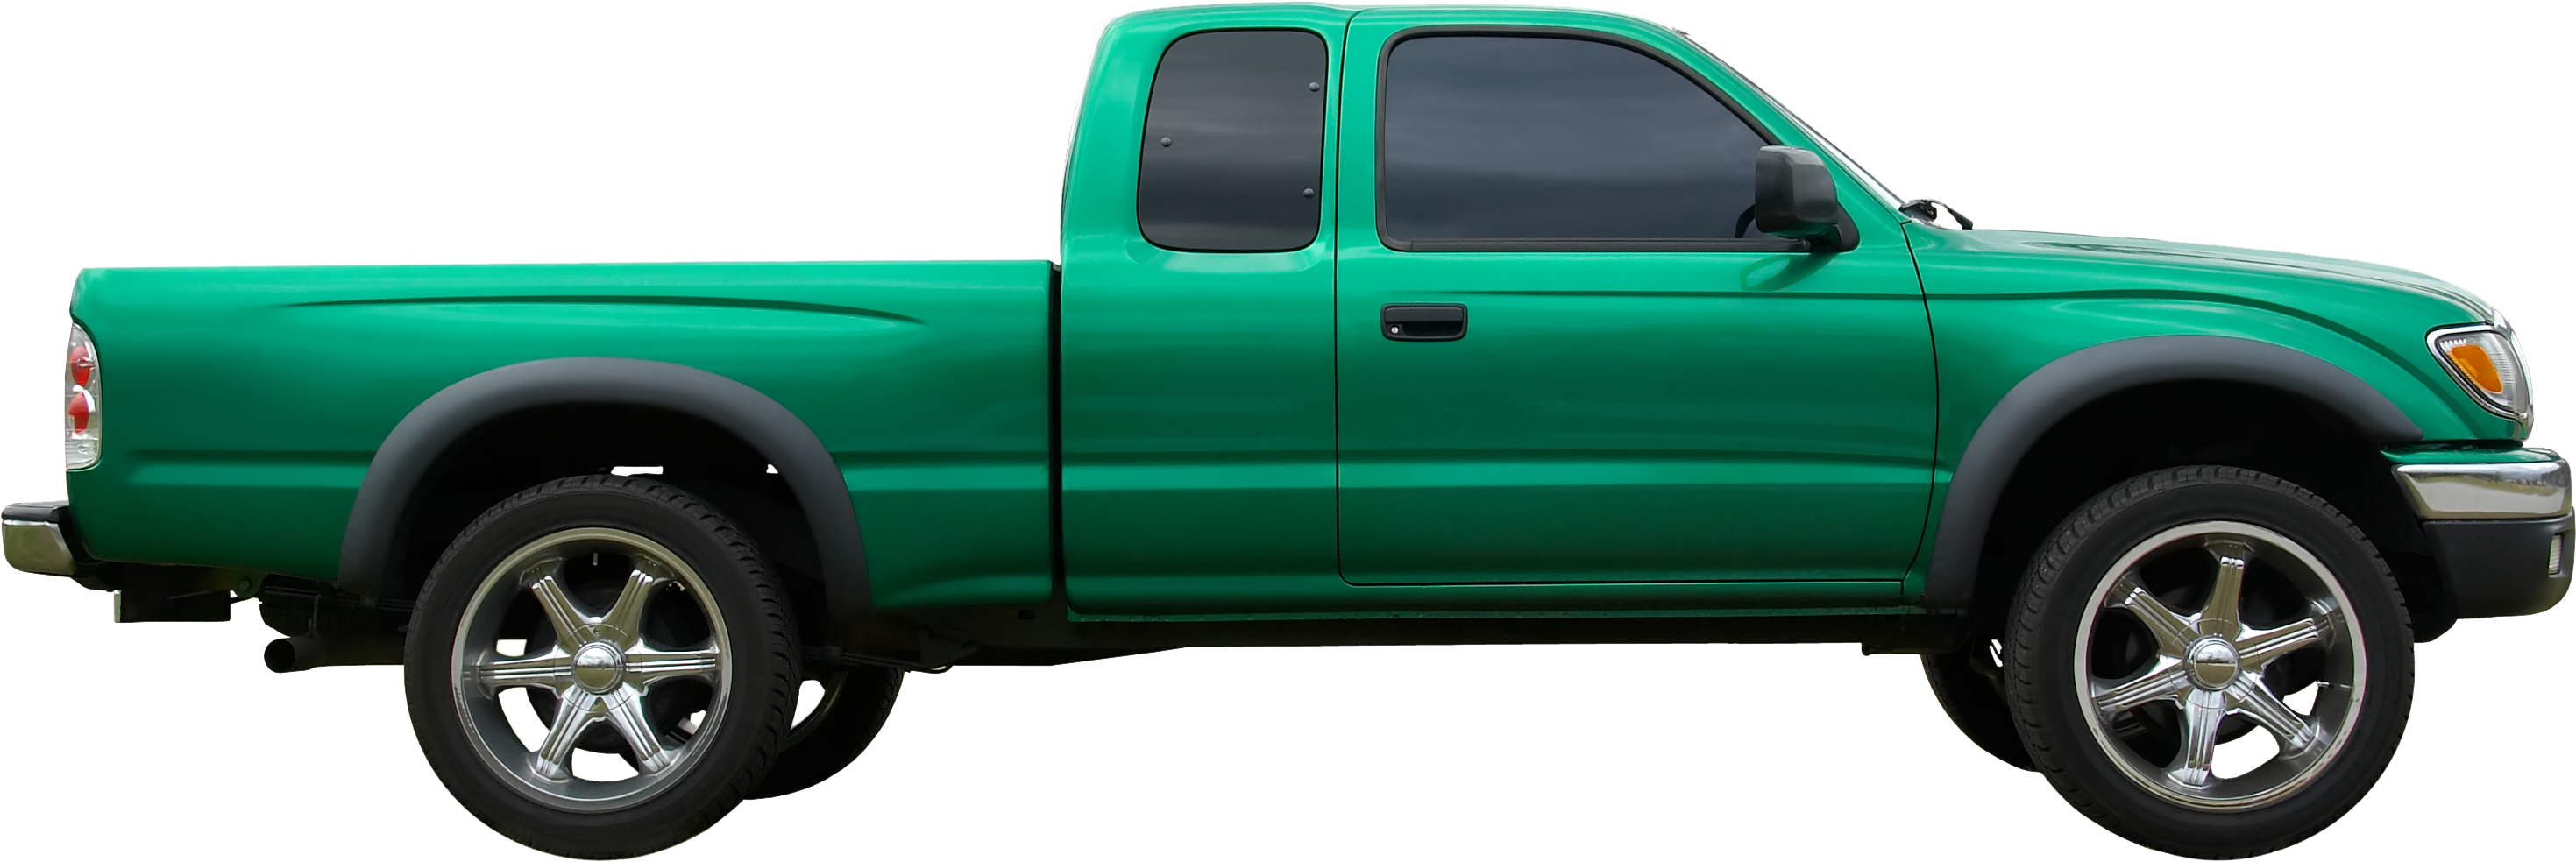 Truck transparent invisible. Pickup png image purepng